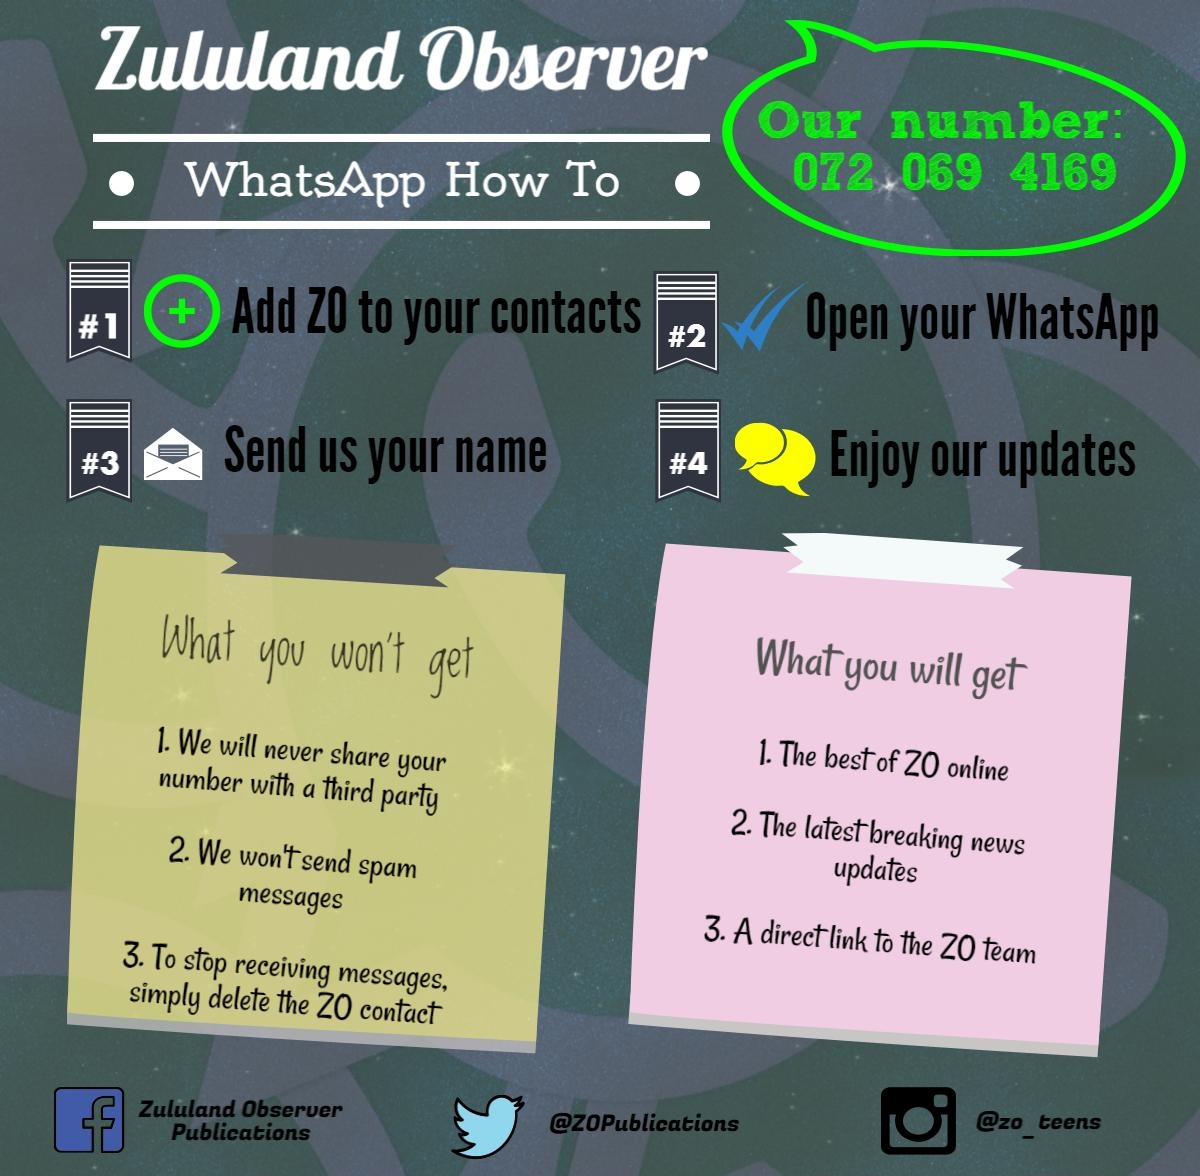 ZO now on WhatsApp – here's how you can sign up | Zululand Observer